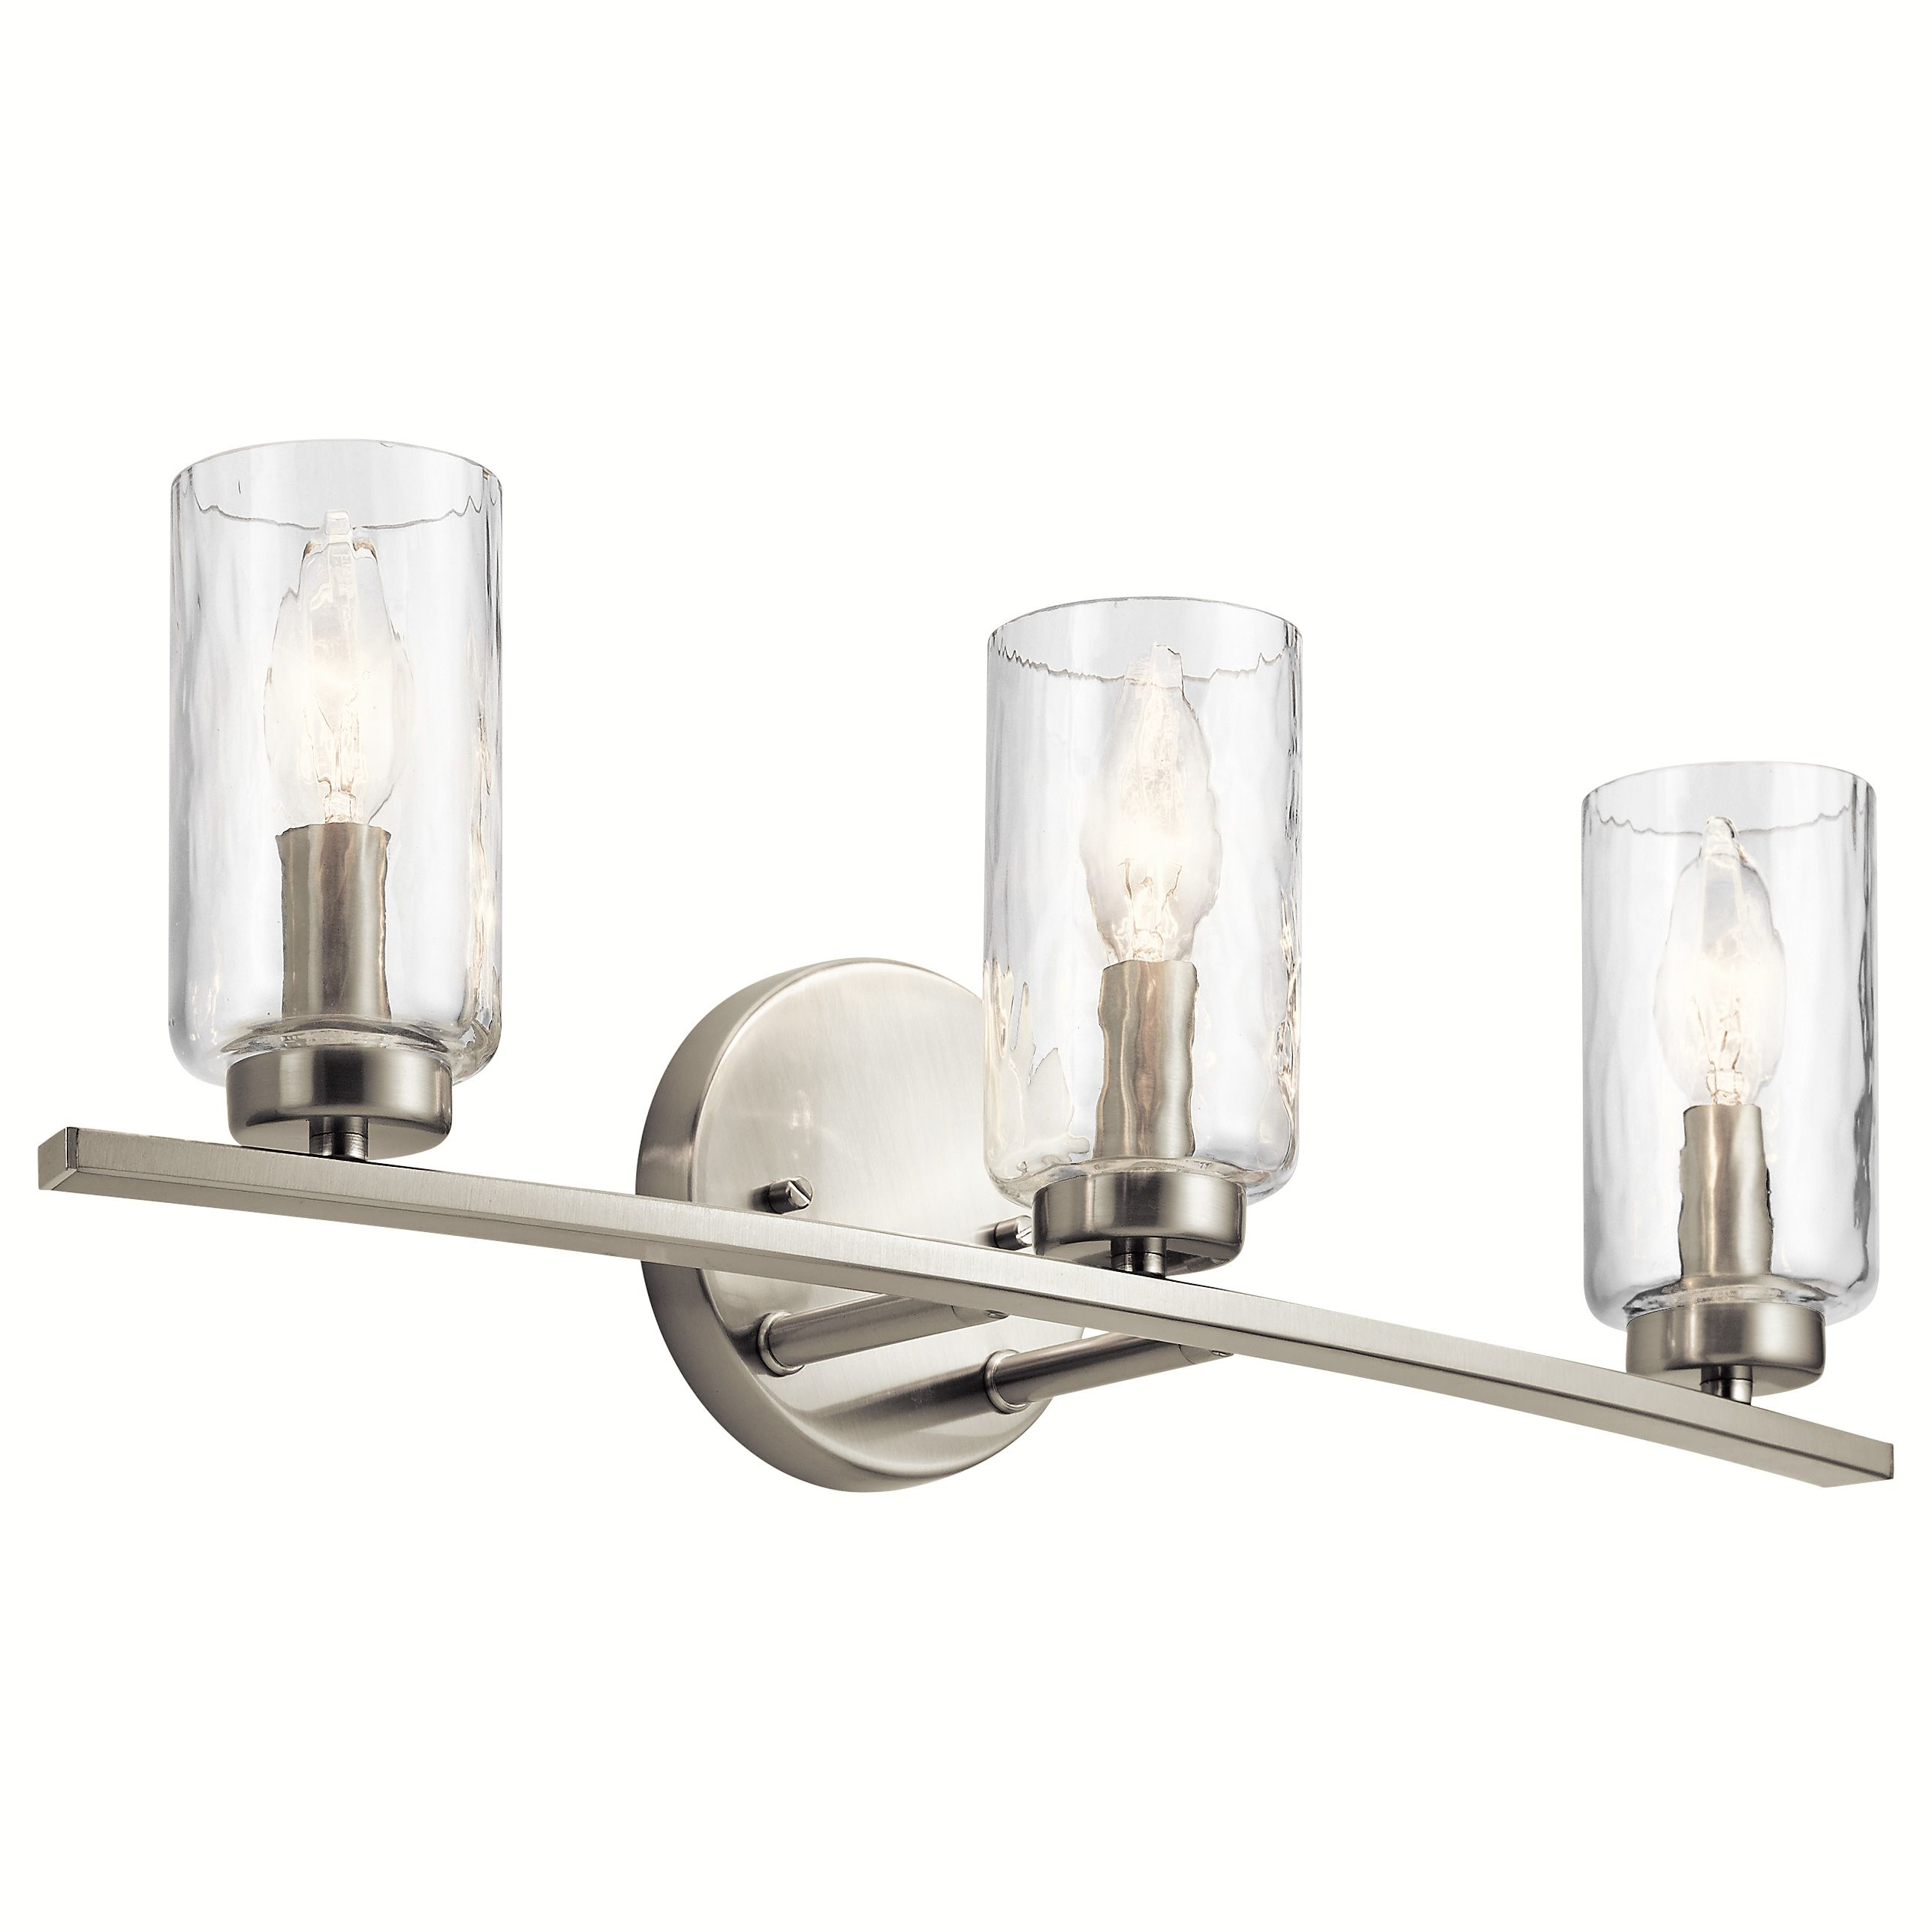 Will Also Replace The Vanity Light With A New One And Install A Switch